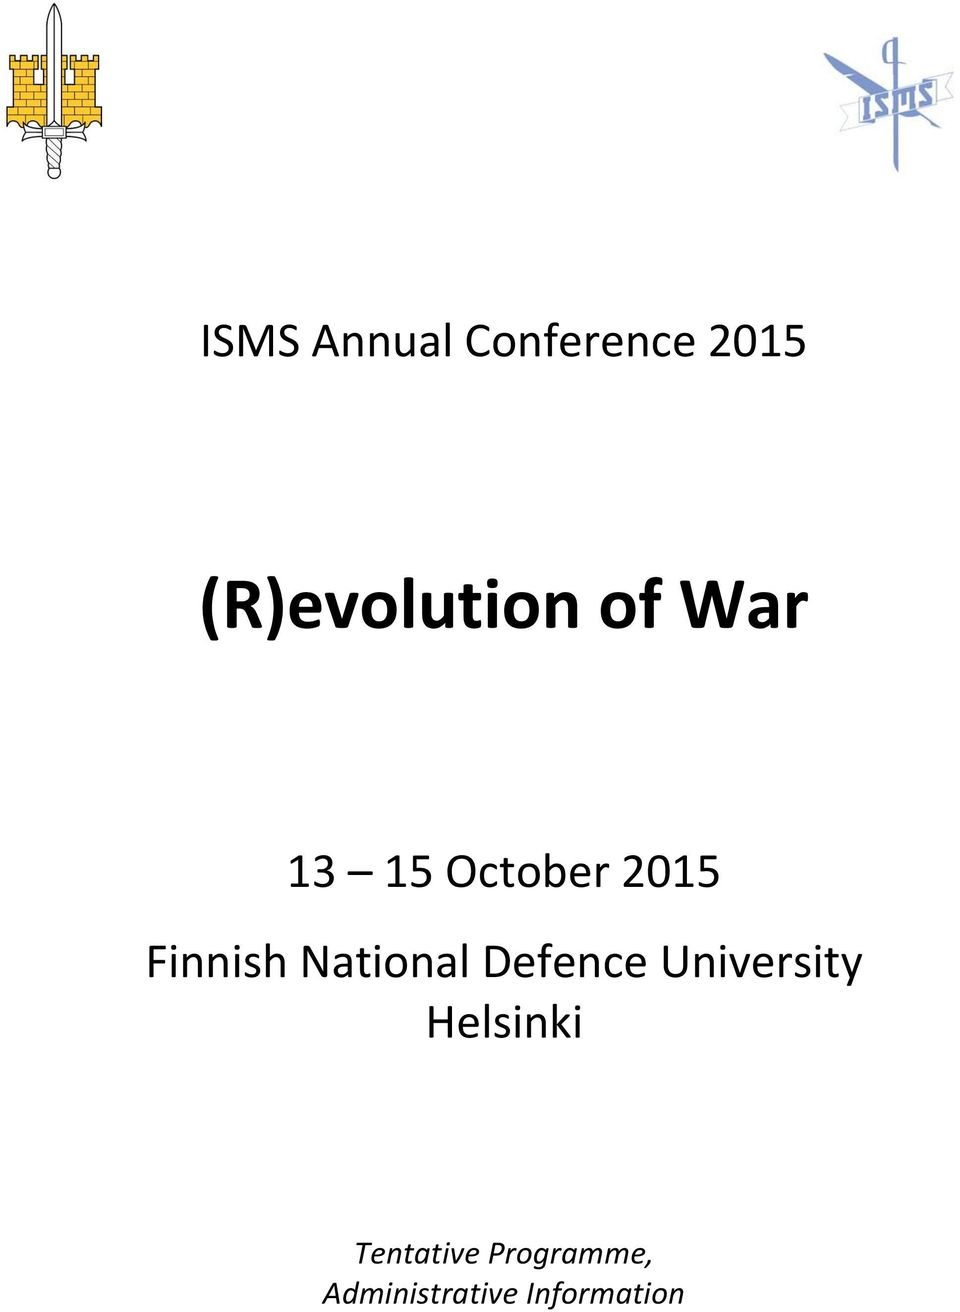 Finnish National Defence University